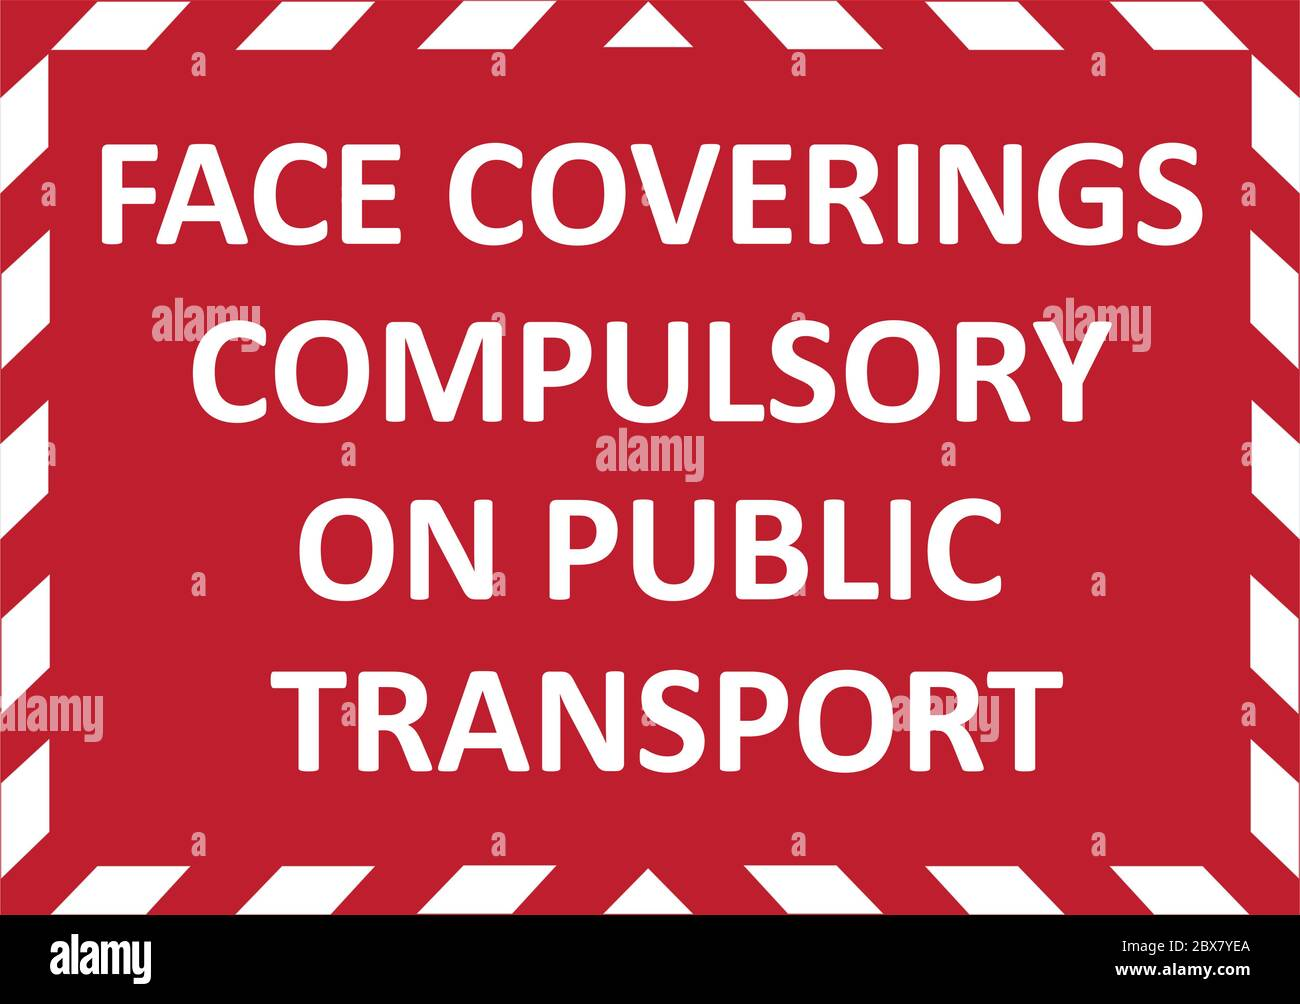 FACE COVERINGS COMPULSORY ON PUBLIC TRANSPORT warning sign. Red quarantine sign that help to battle against Covid-19 in the United Kingdom. Vector Stock Vector